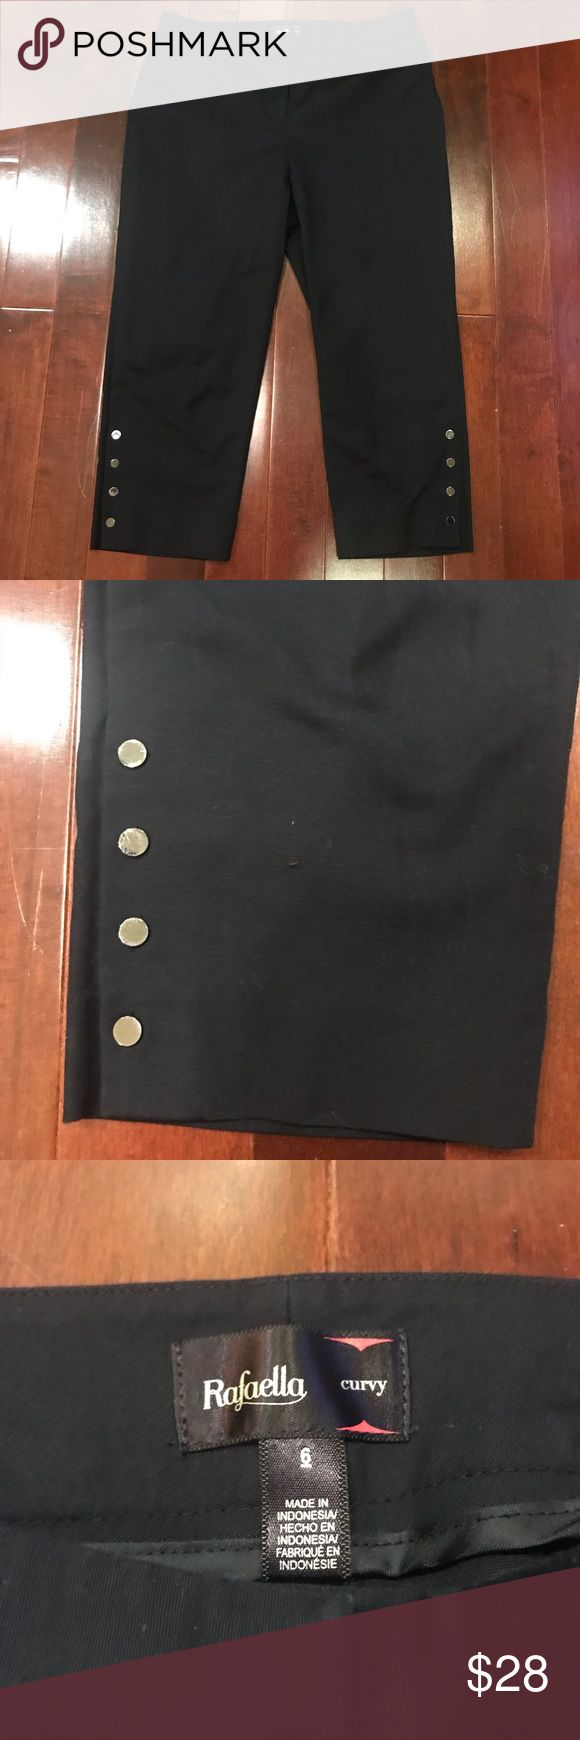 Women's Rafaella Curvy Capri Crop Black Pants Good condition!  Some minor wear and fading.  Curvy fit.  Cotton, polyester, spandex.  Inseam is 20 inches, waist is 15.5 inches, hips are 18.5 inches.  Size 6. Rafaella Pants Ankle & Cropped